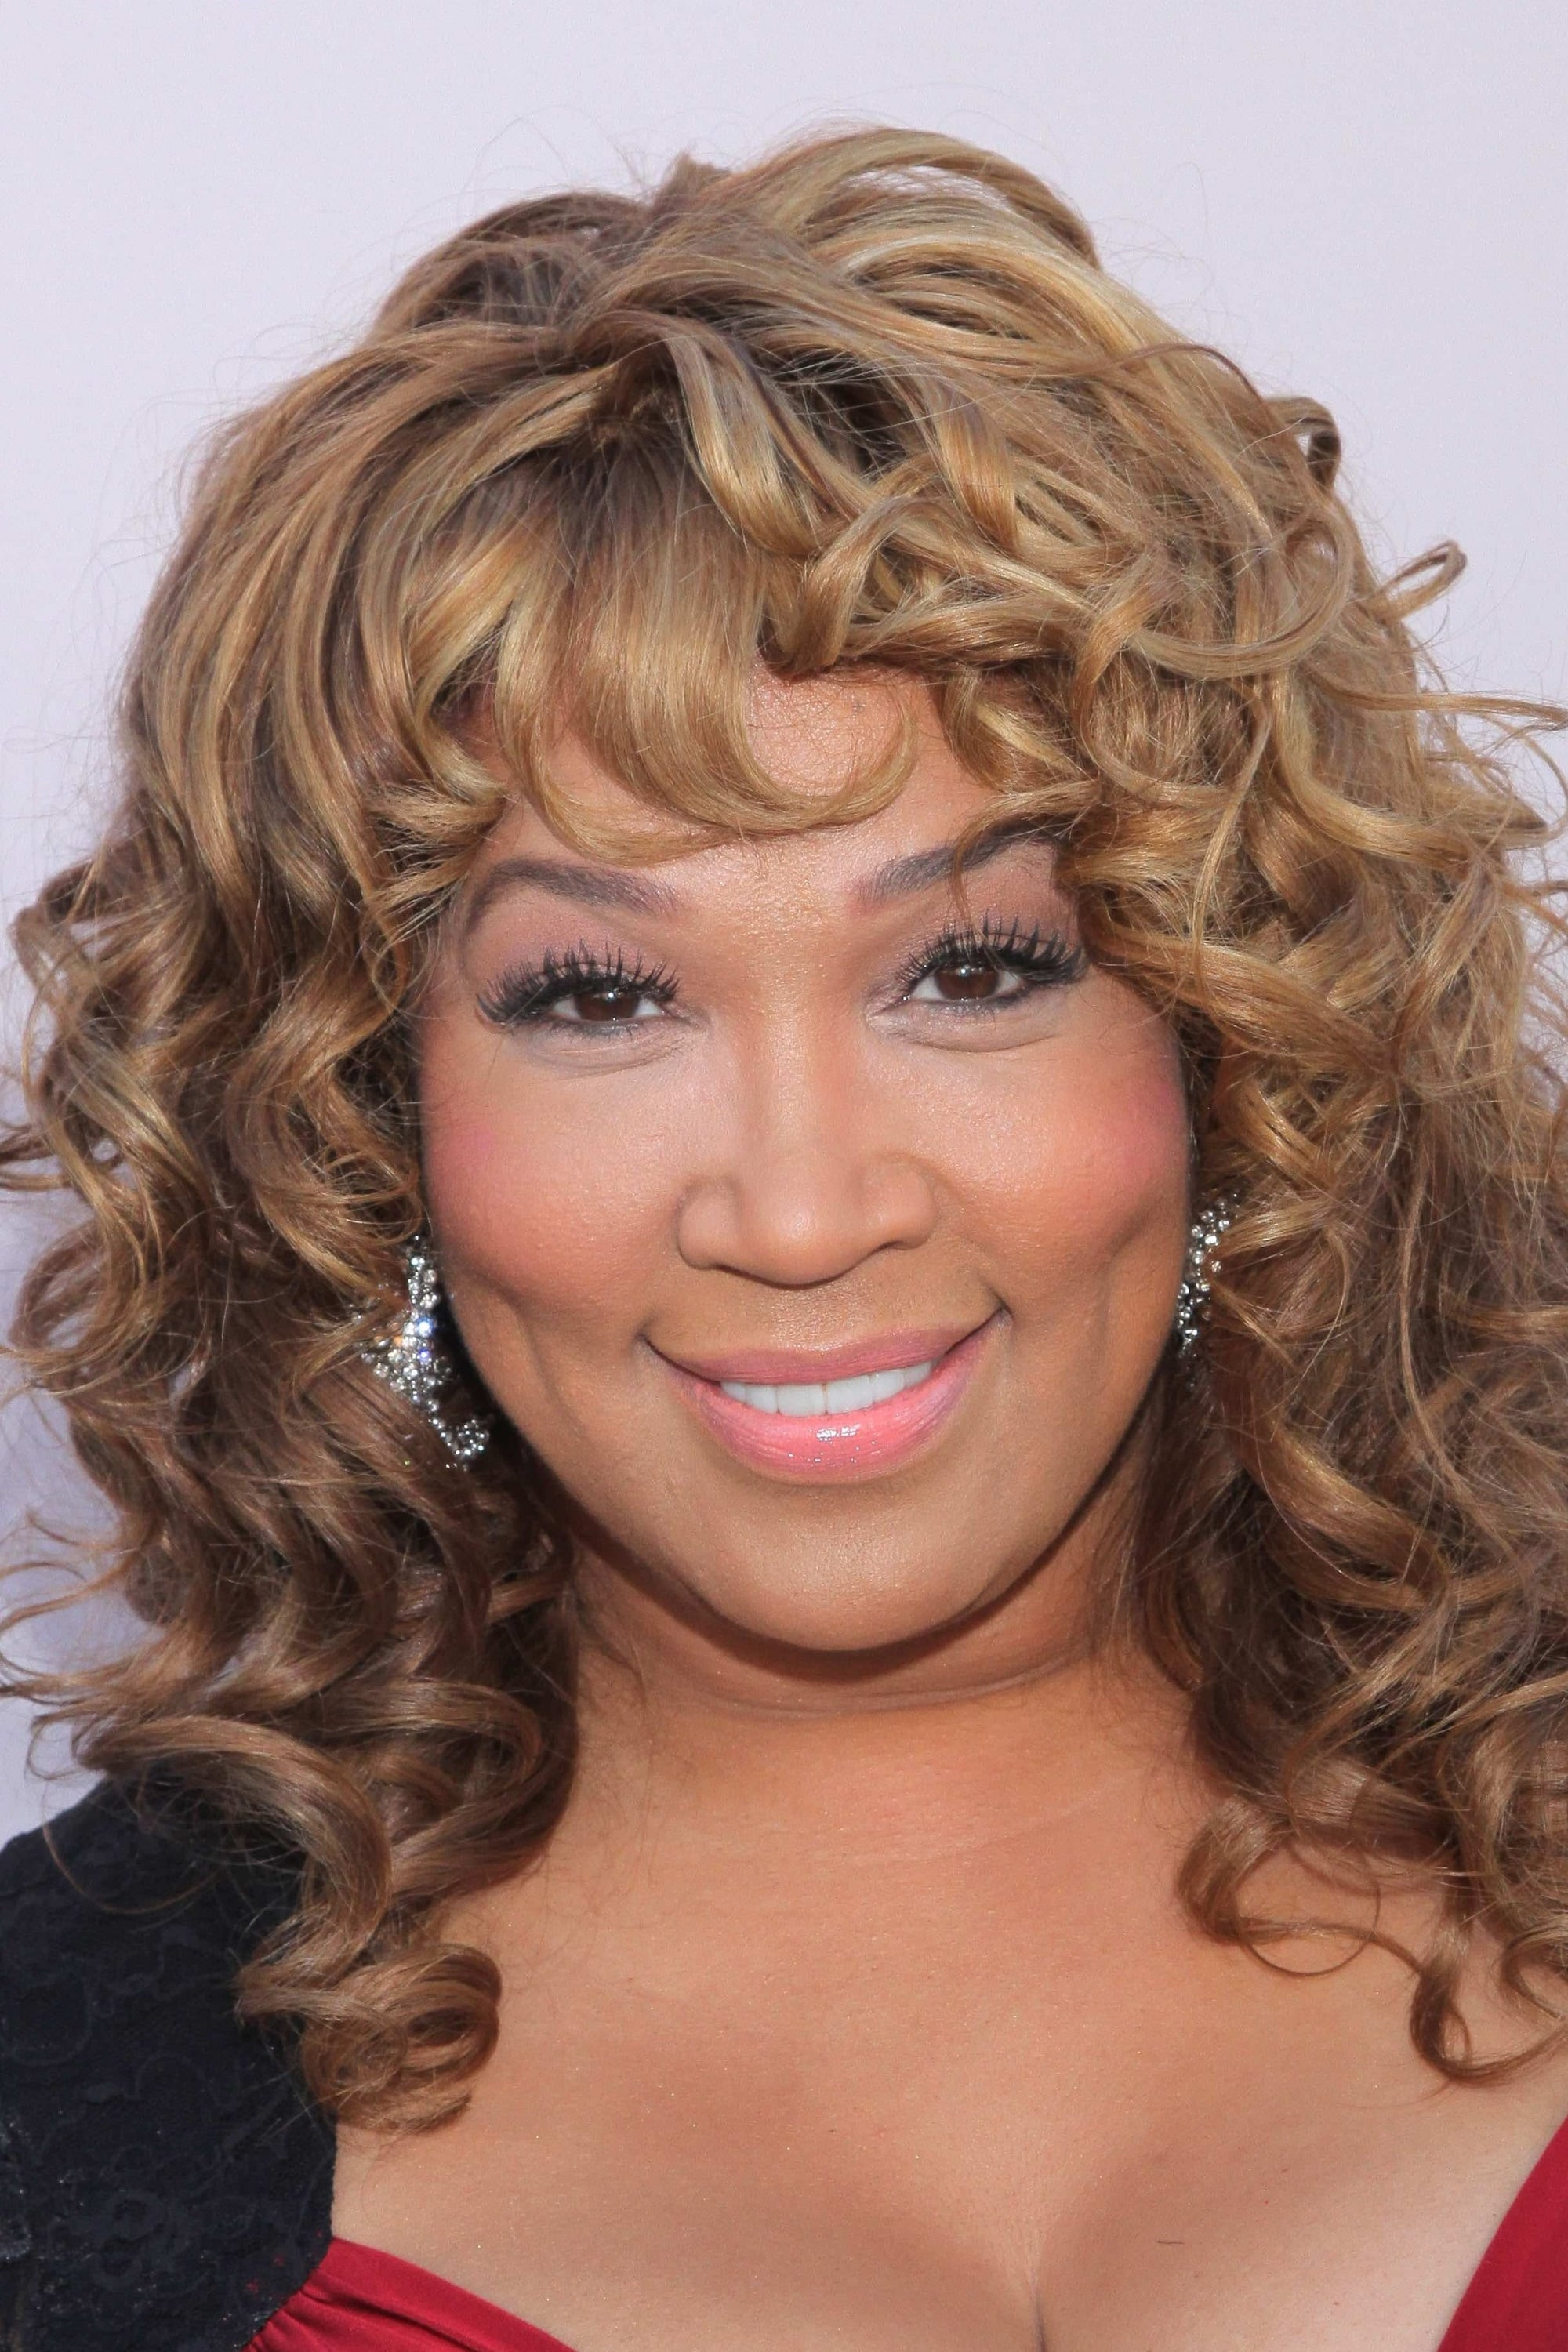 Kym Whitley Kym Whitley new picture